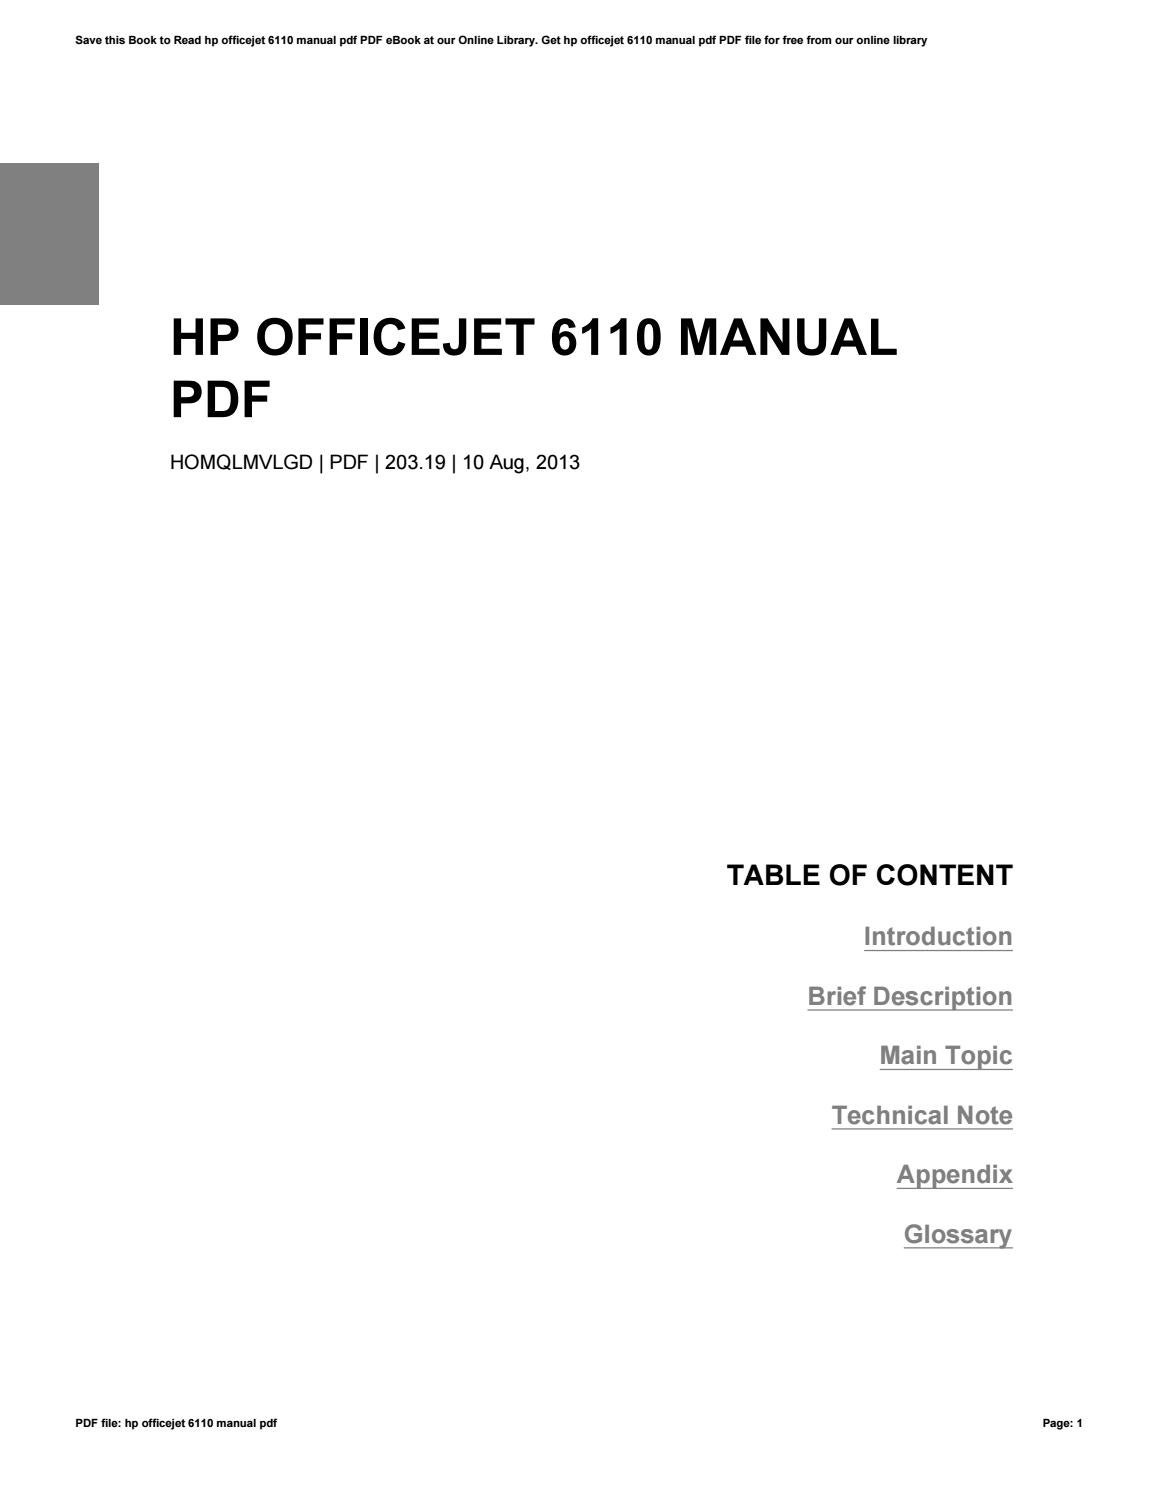 hp officejet pro k8600 manual pdf